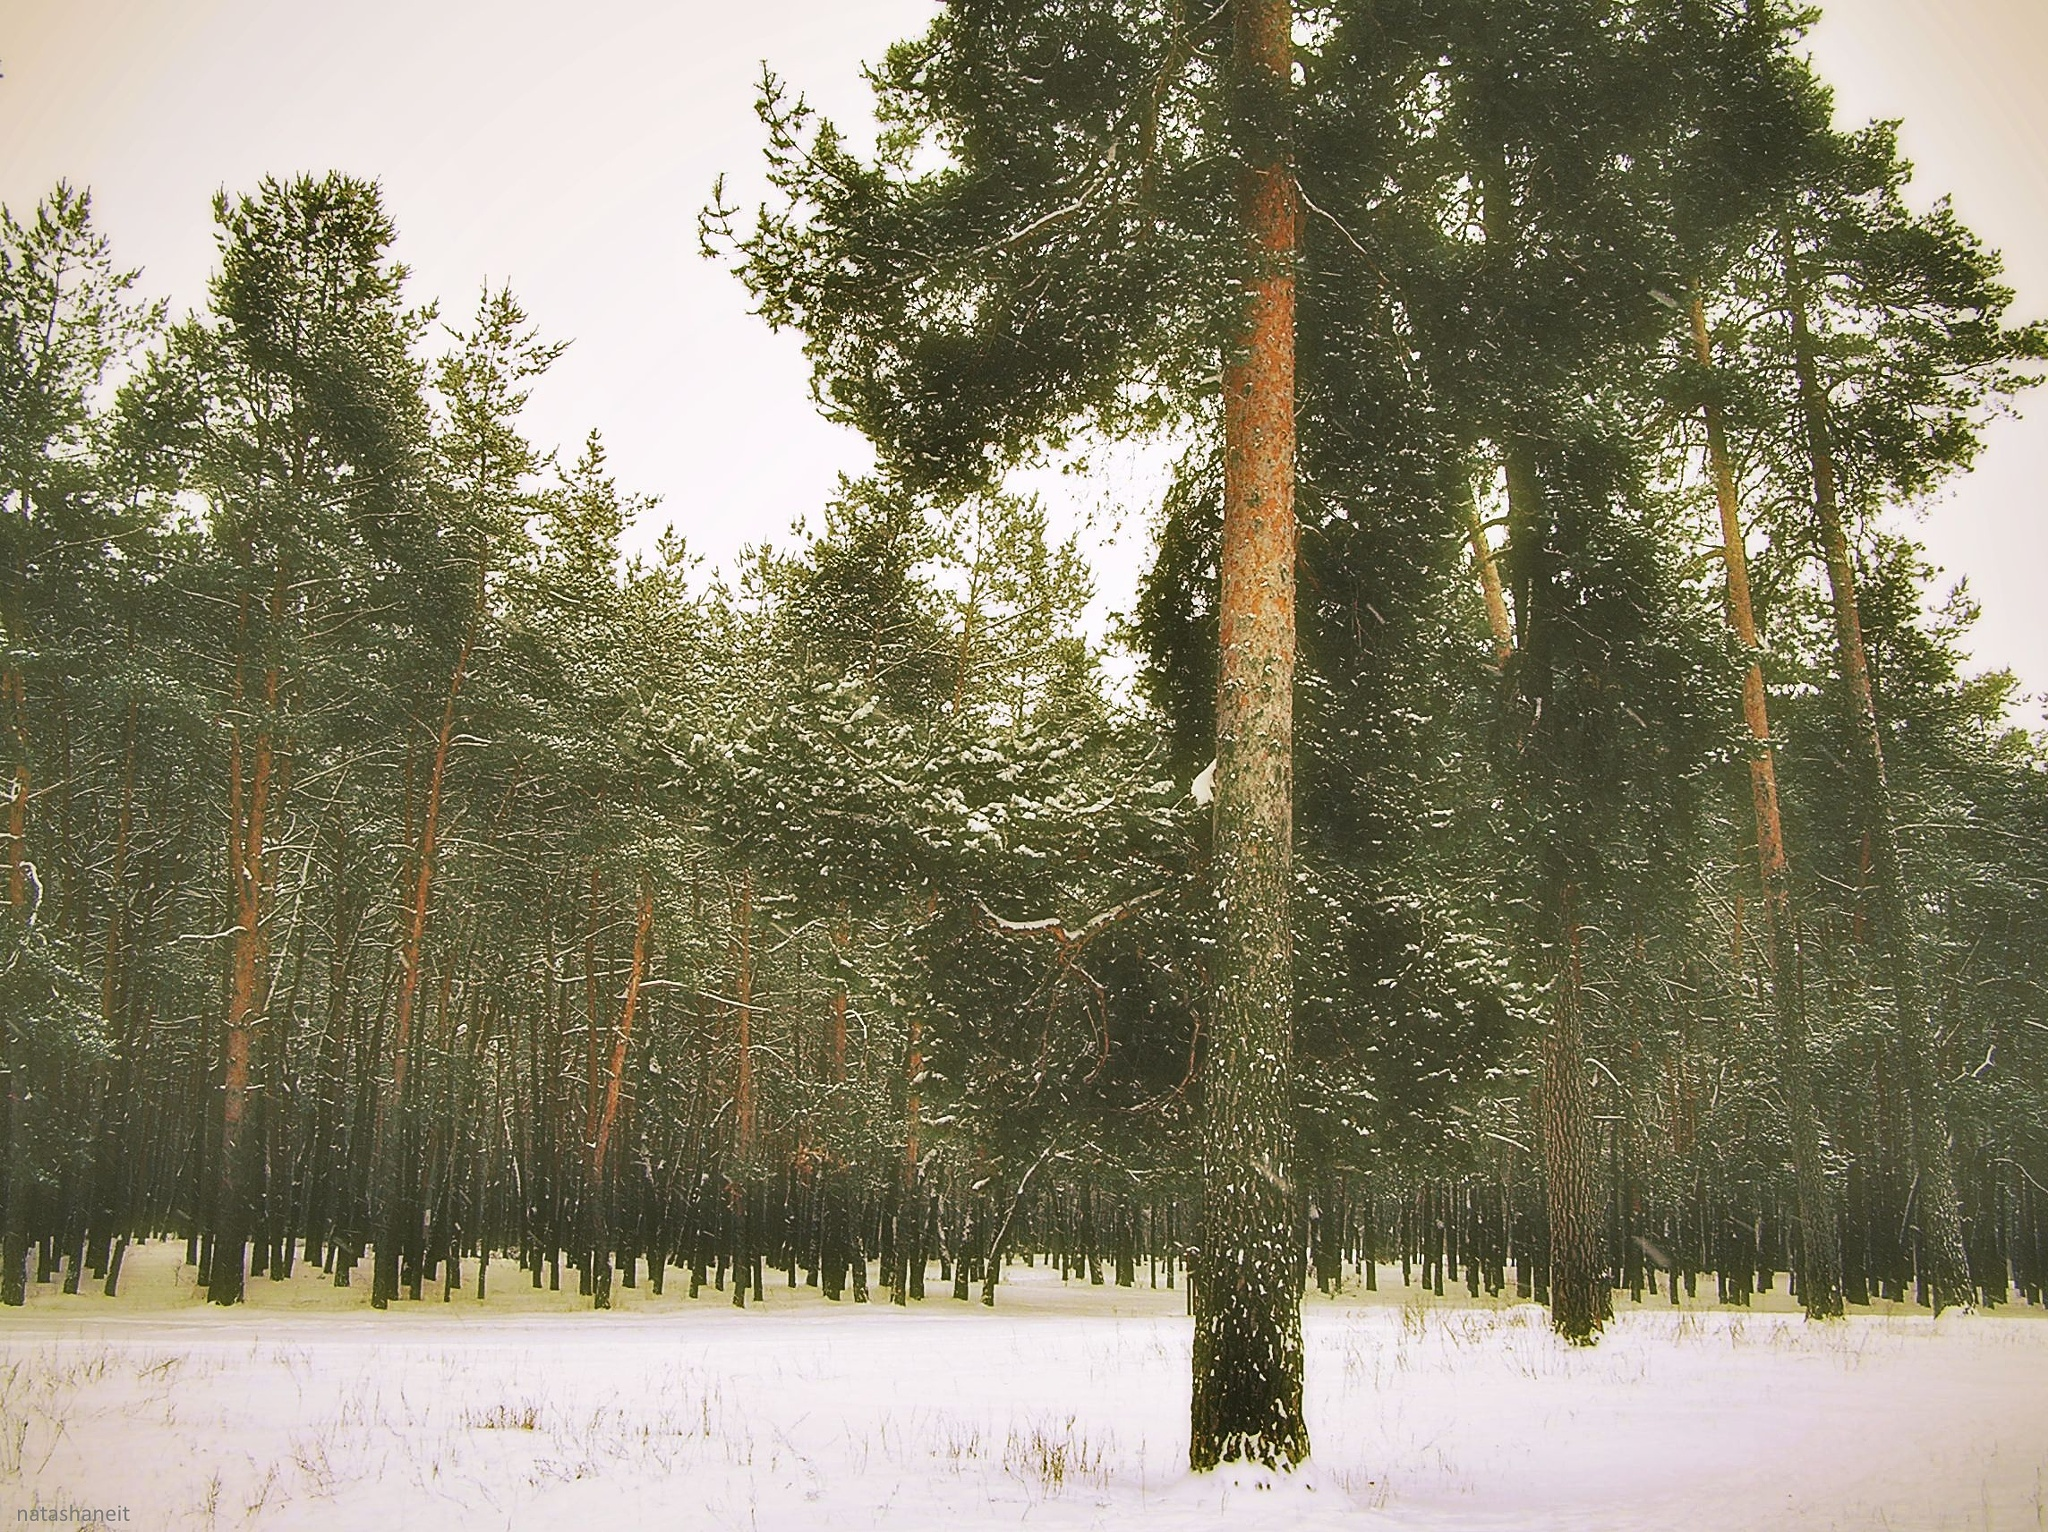 Snow day in a pine forest by natashaneit